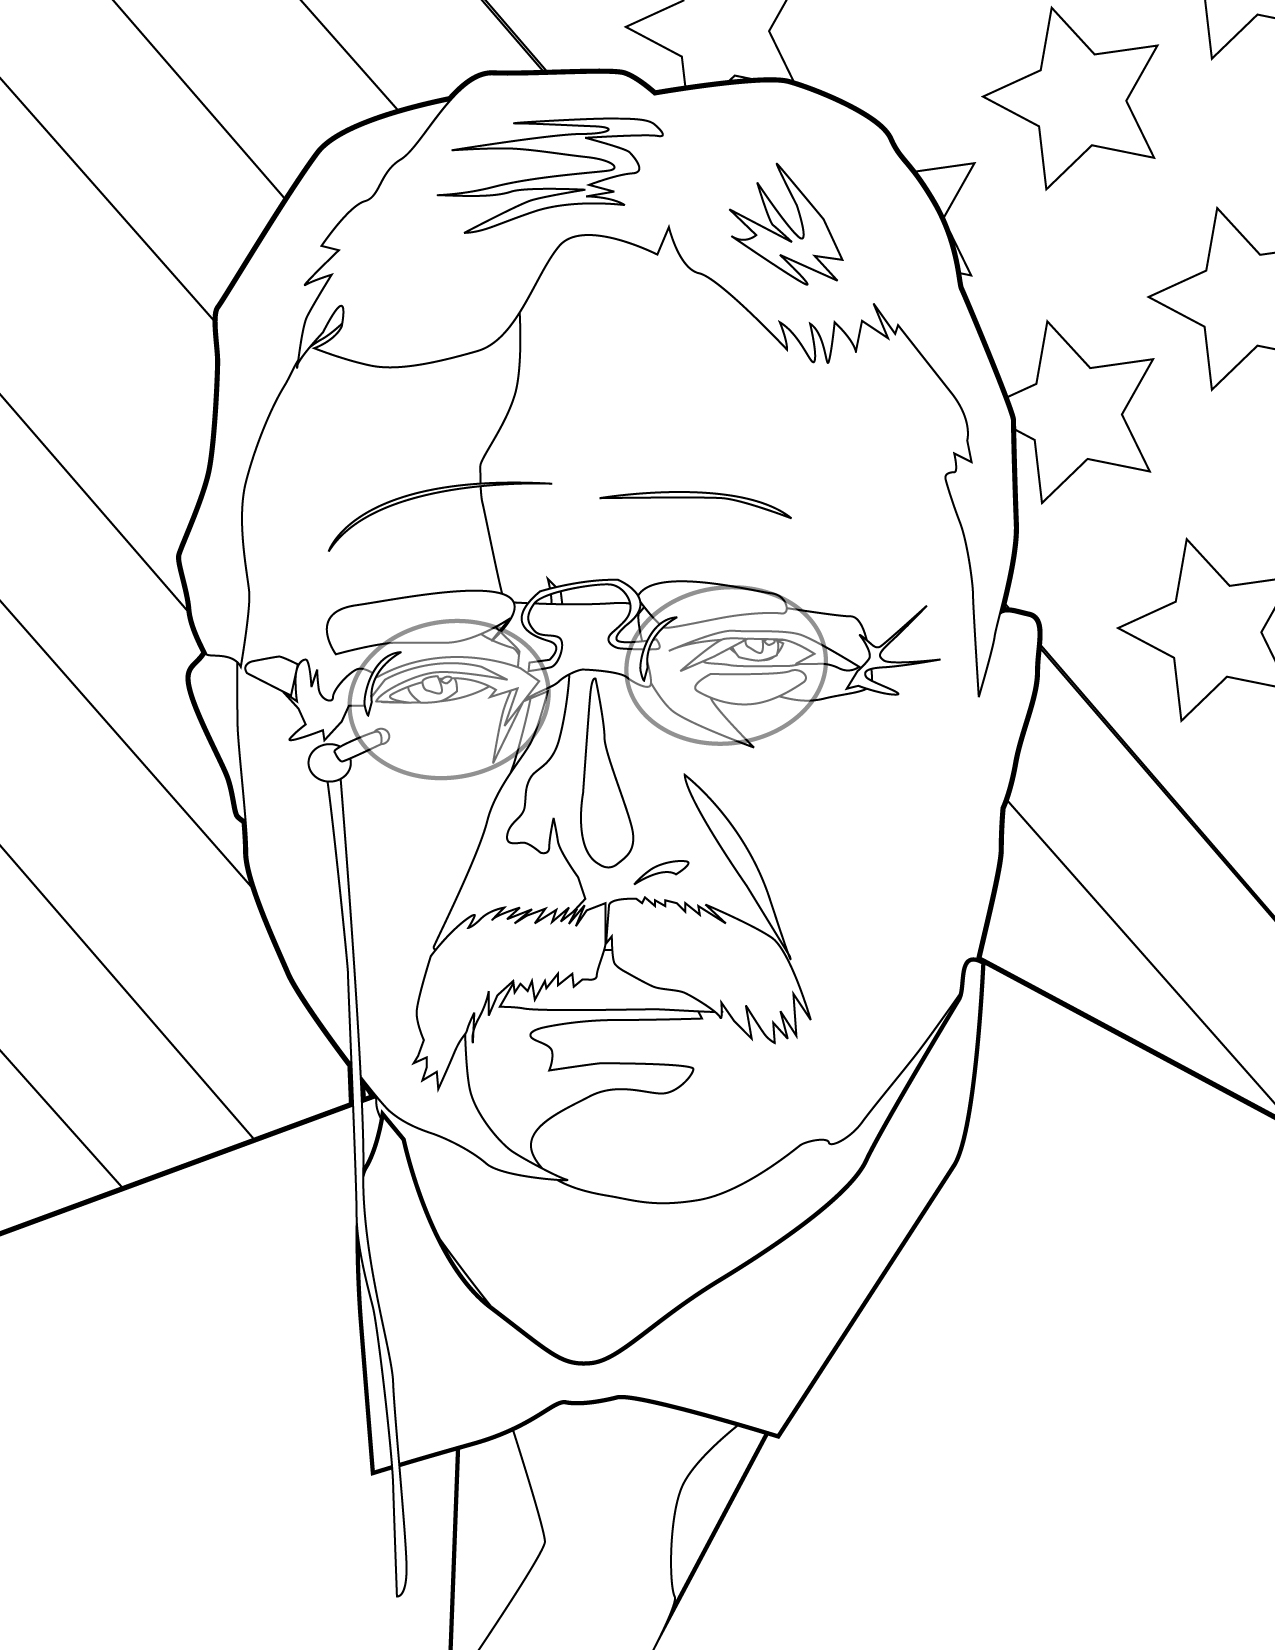 Theodore Roosevelt coloring #5, Download drawings